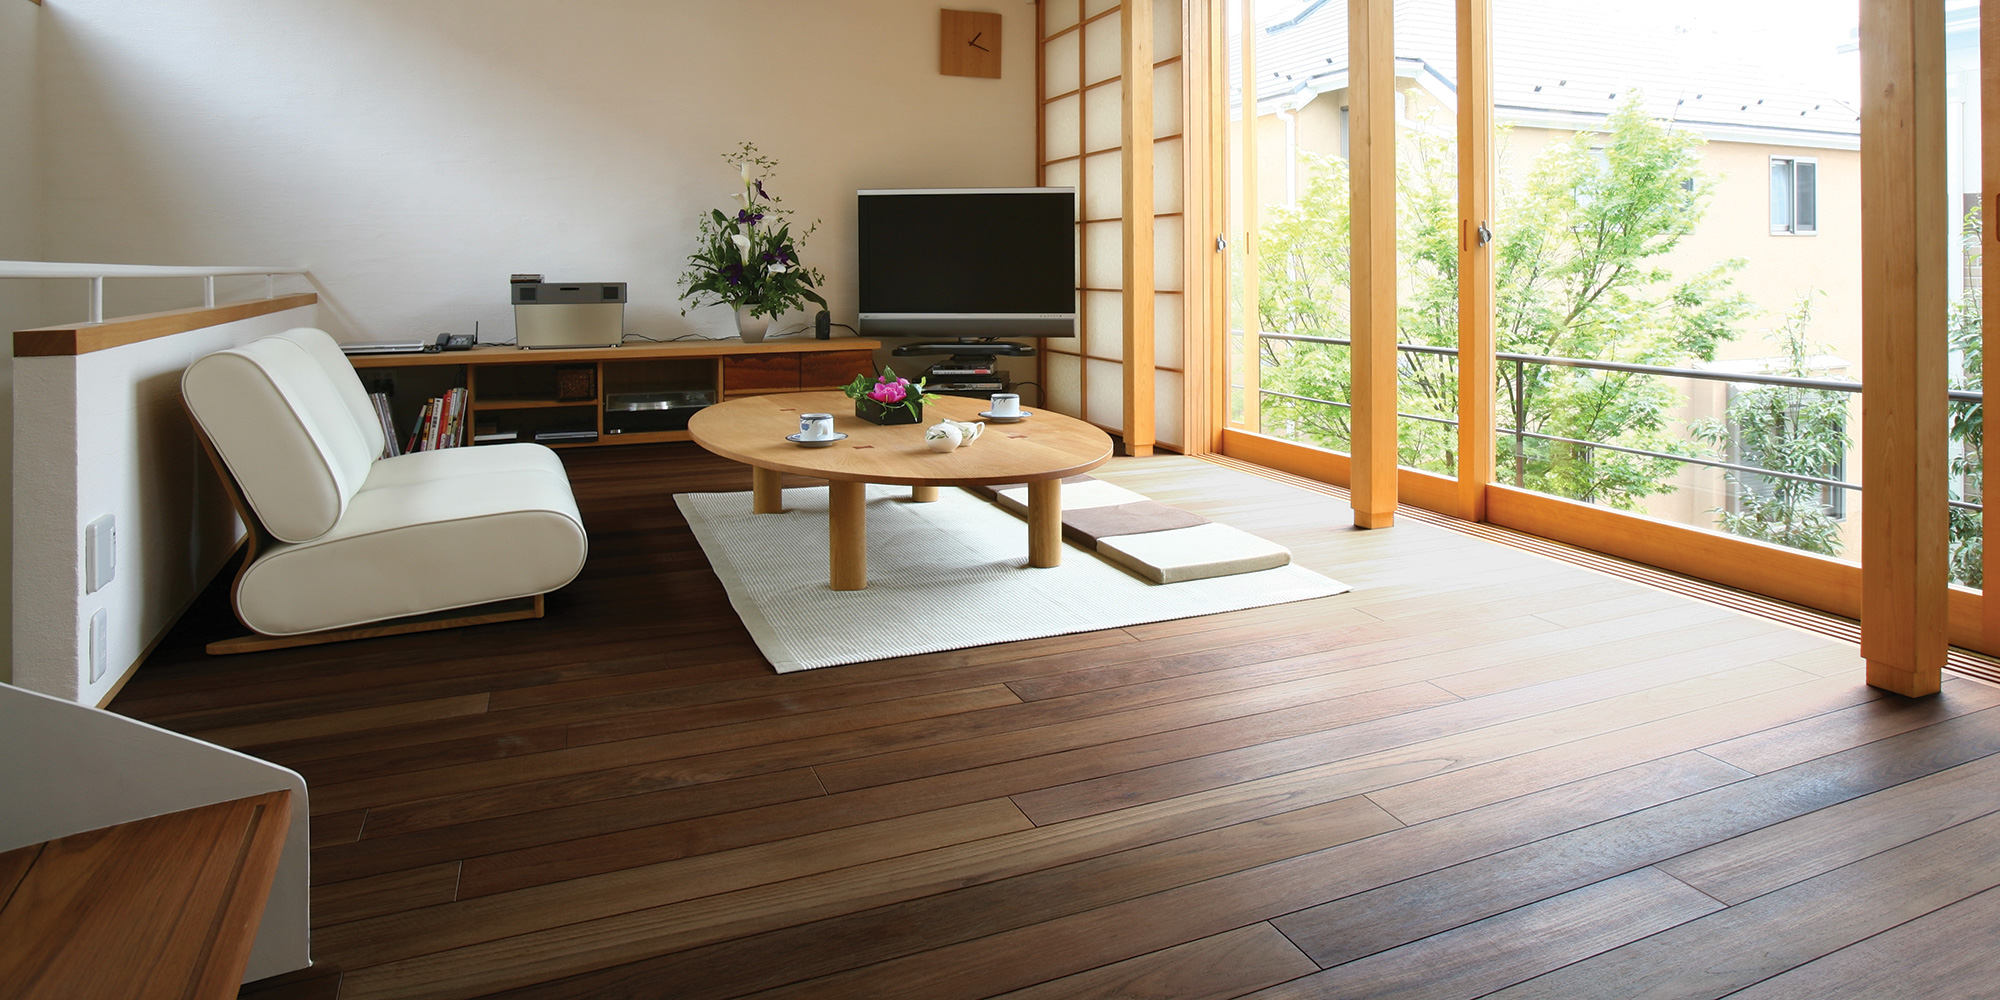 solid drumm overview north services cork timber semi floor installation flooring carpentry building